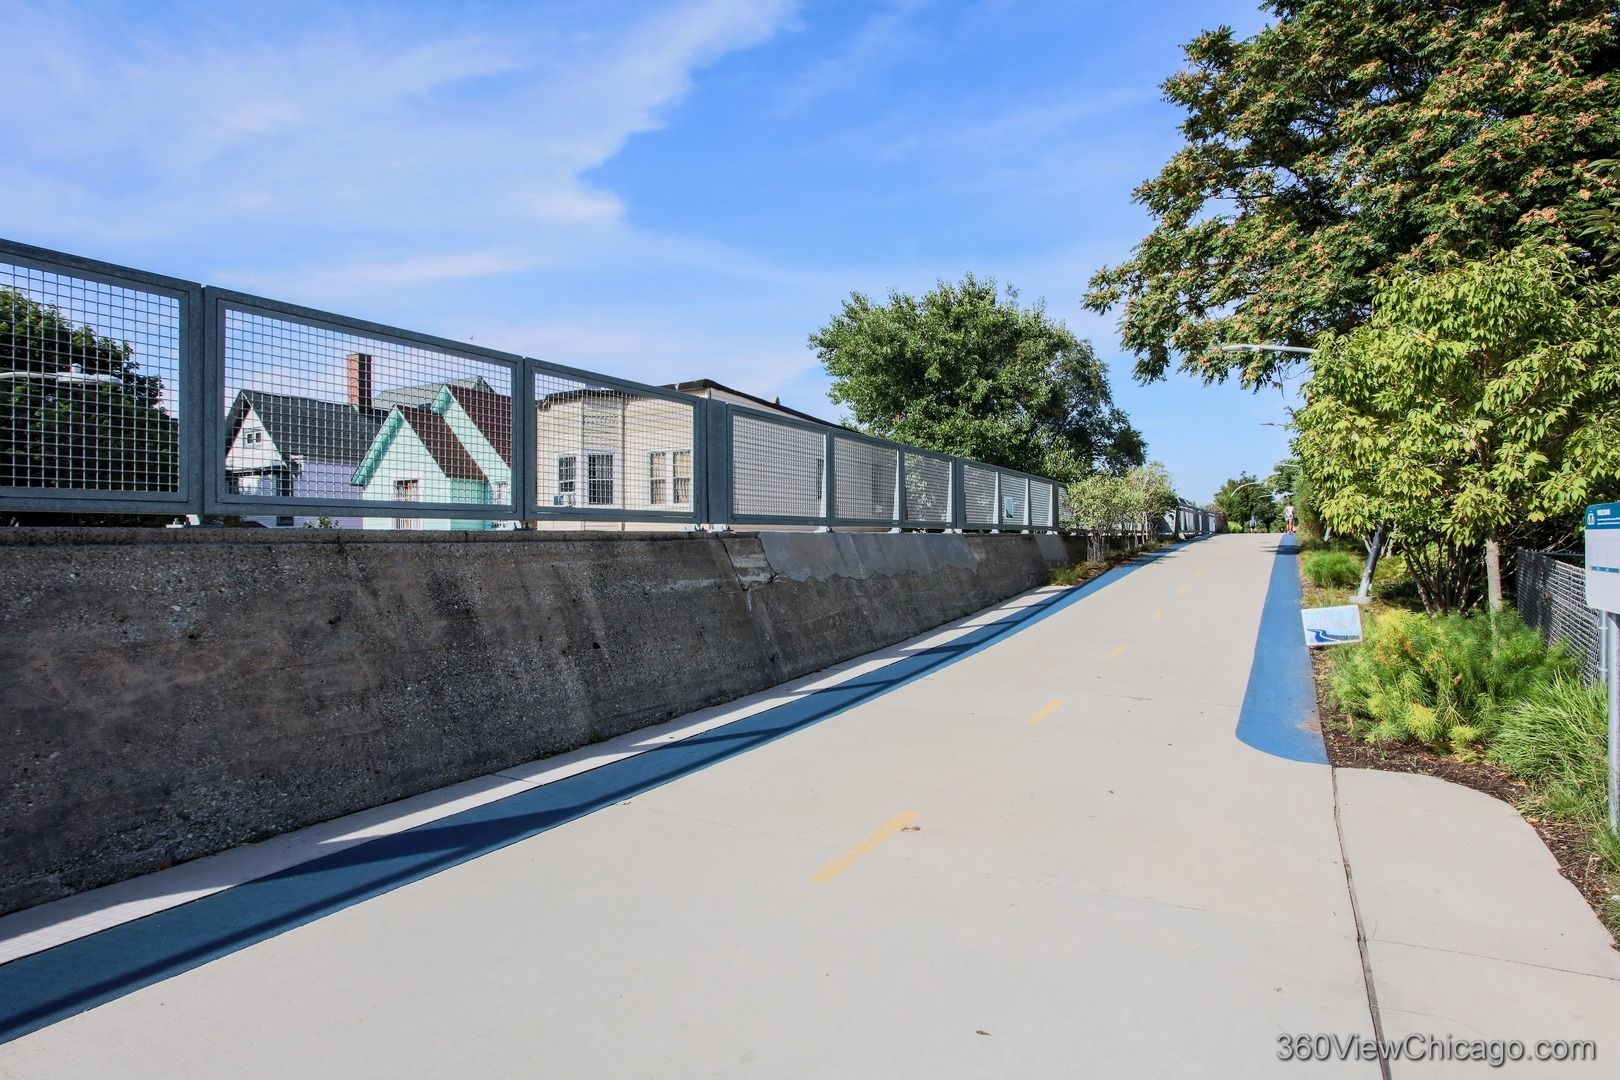 Photo 37: Photos: 1733 Troy Street in Chicago: CHI - Humboldt Park Residential for sale ()  : MLS®# 10911567